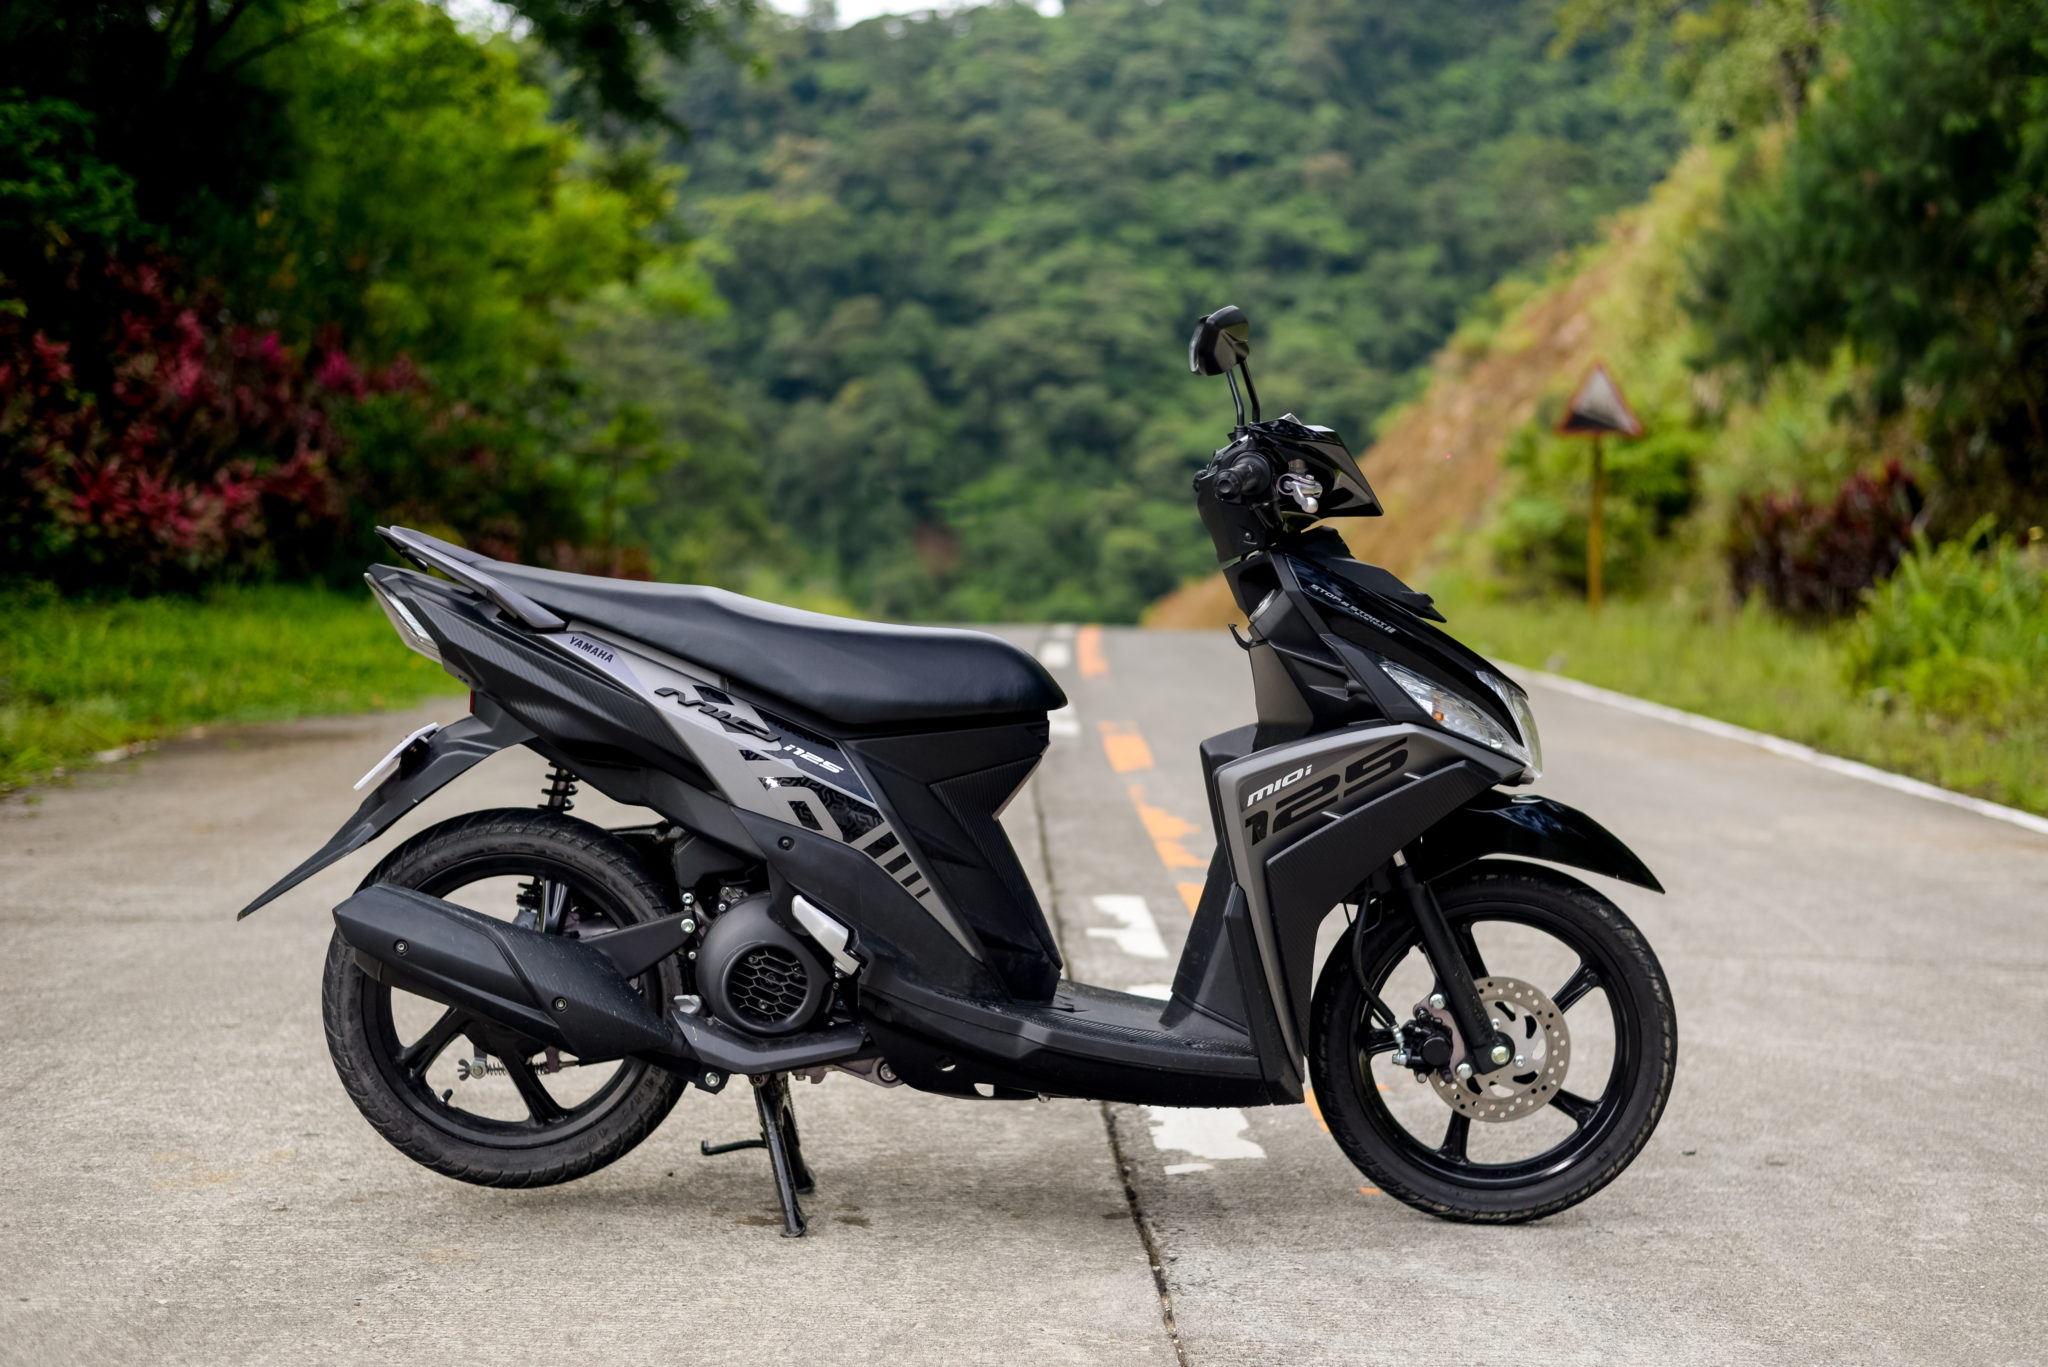 Yamaha Mio Soul Expected Specs & Price in India